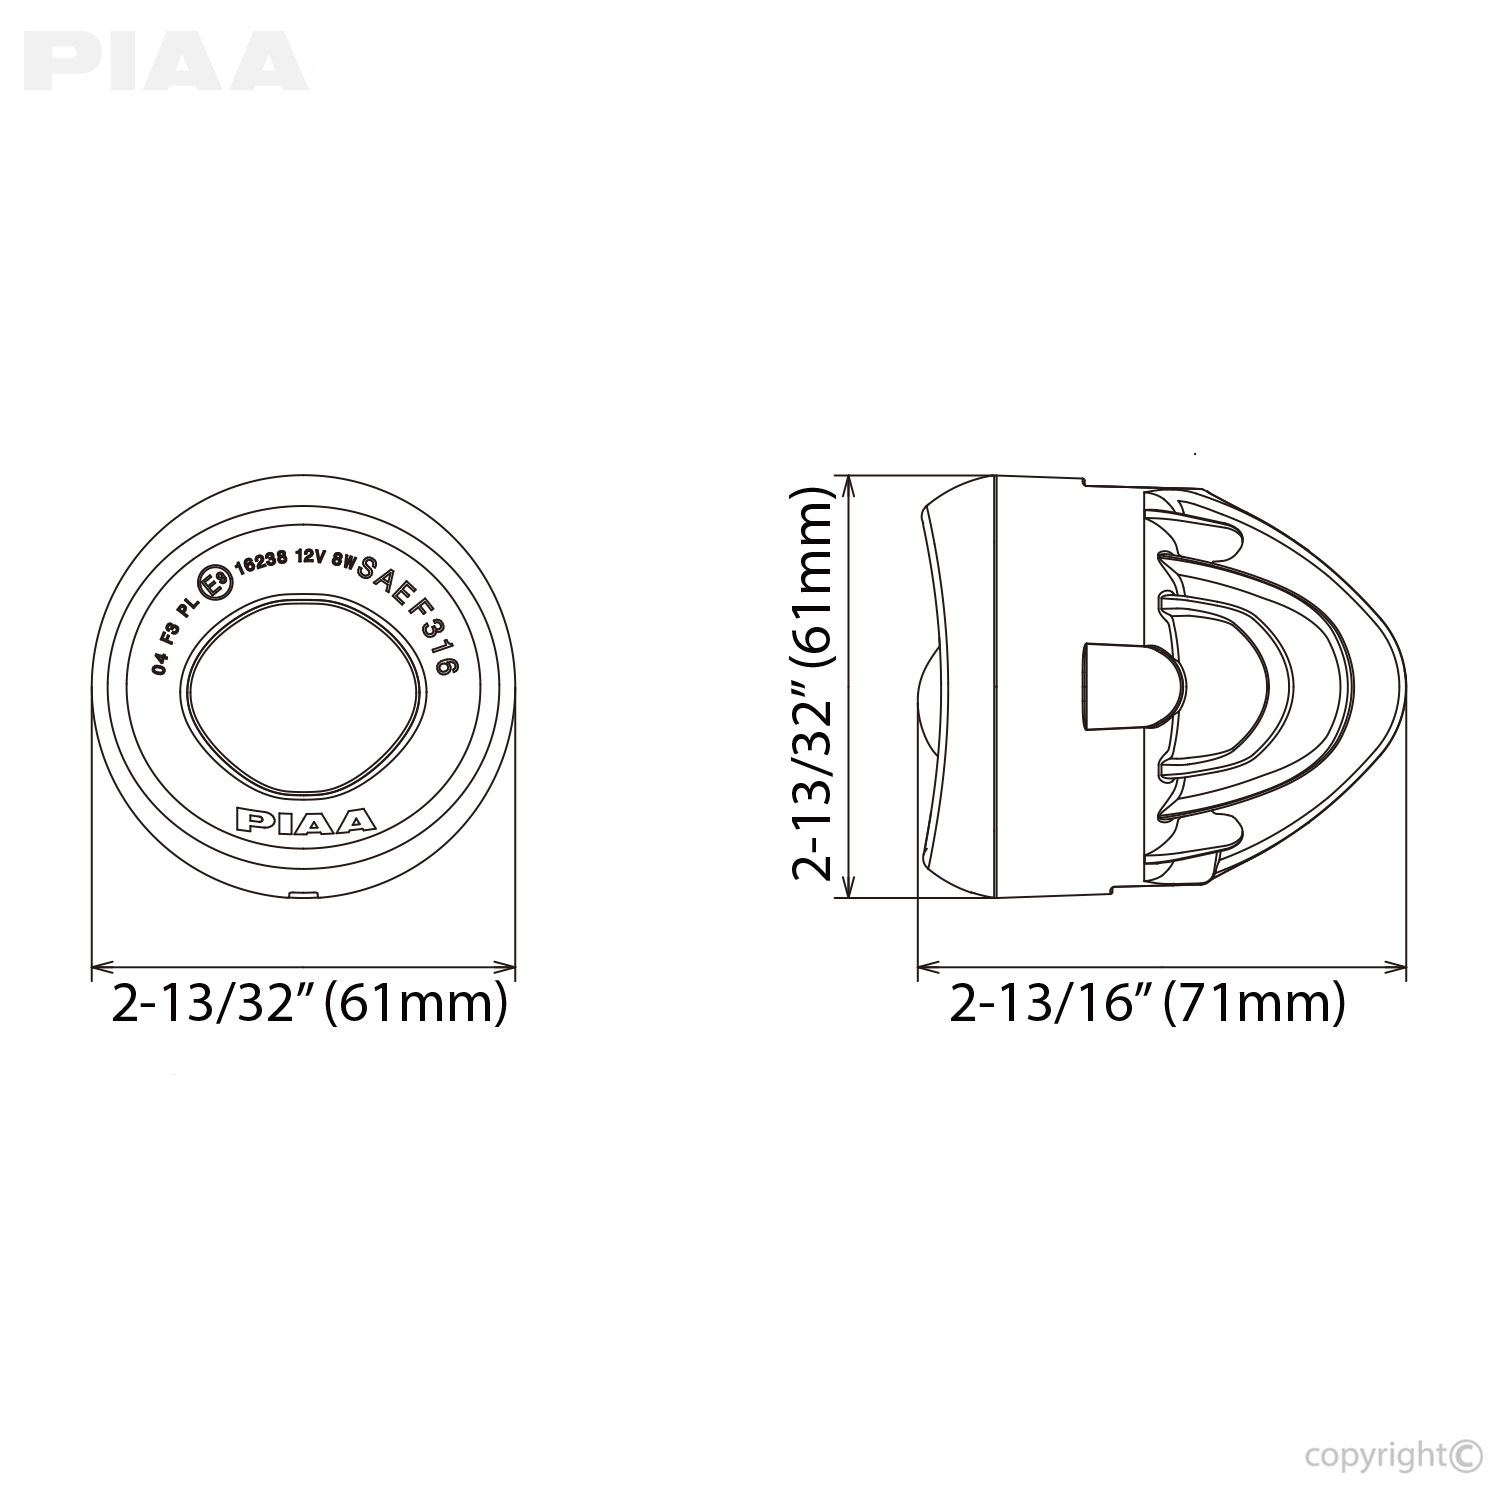 small resolution of piaa led lights for bmw motorcyclesbmw 1100p 2 40